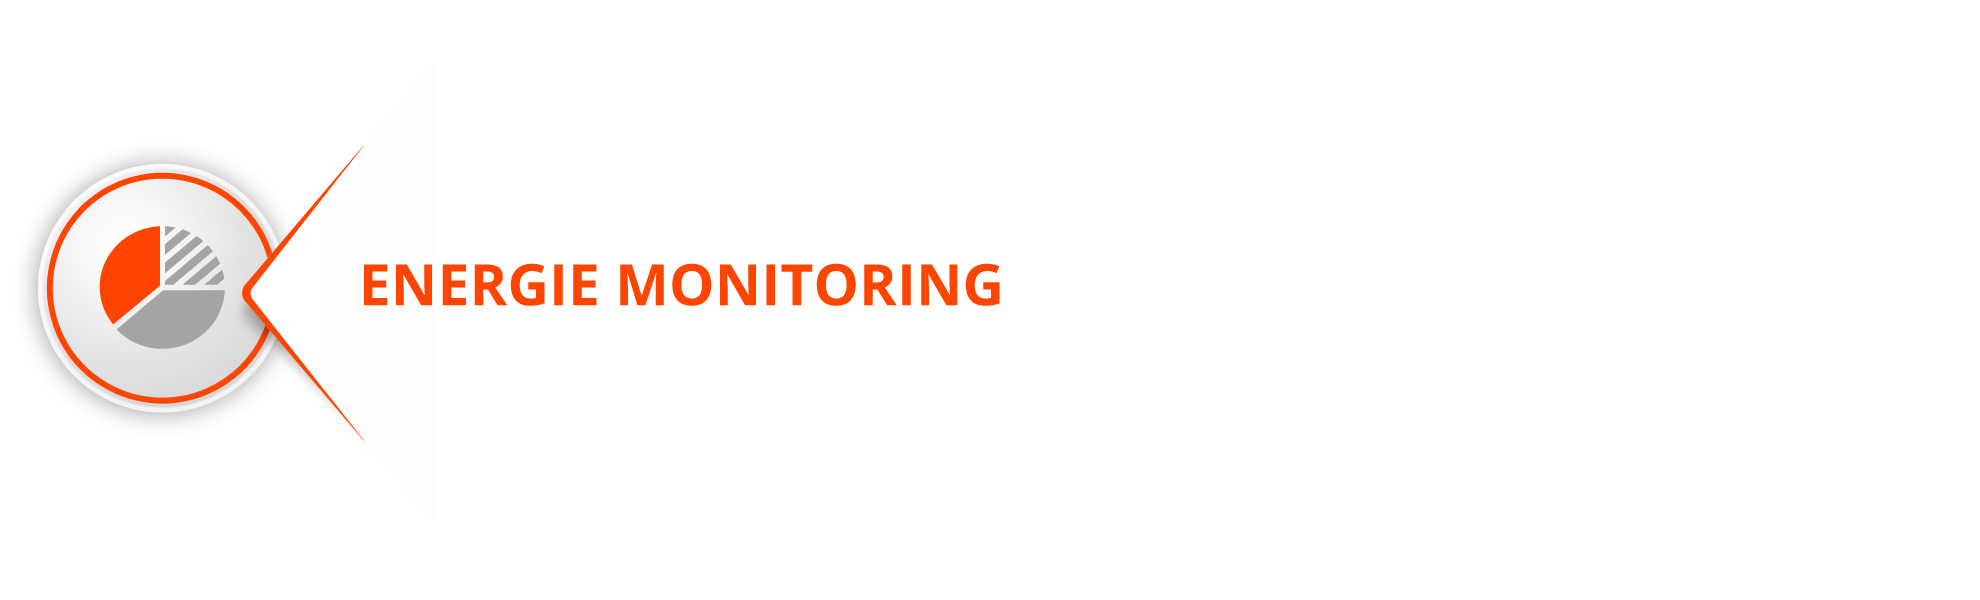 energie-monitoring-azobit